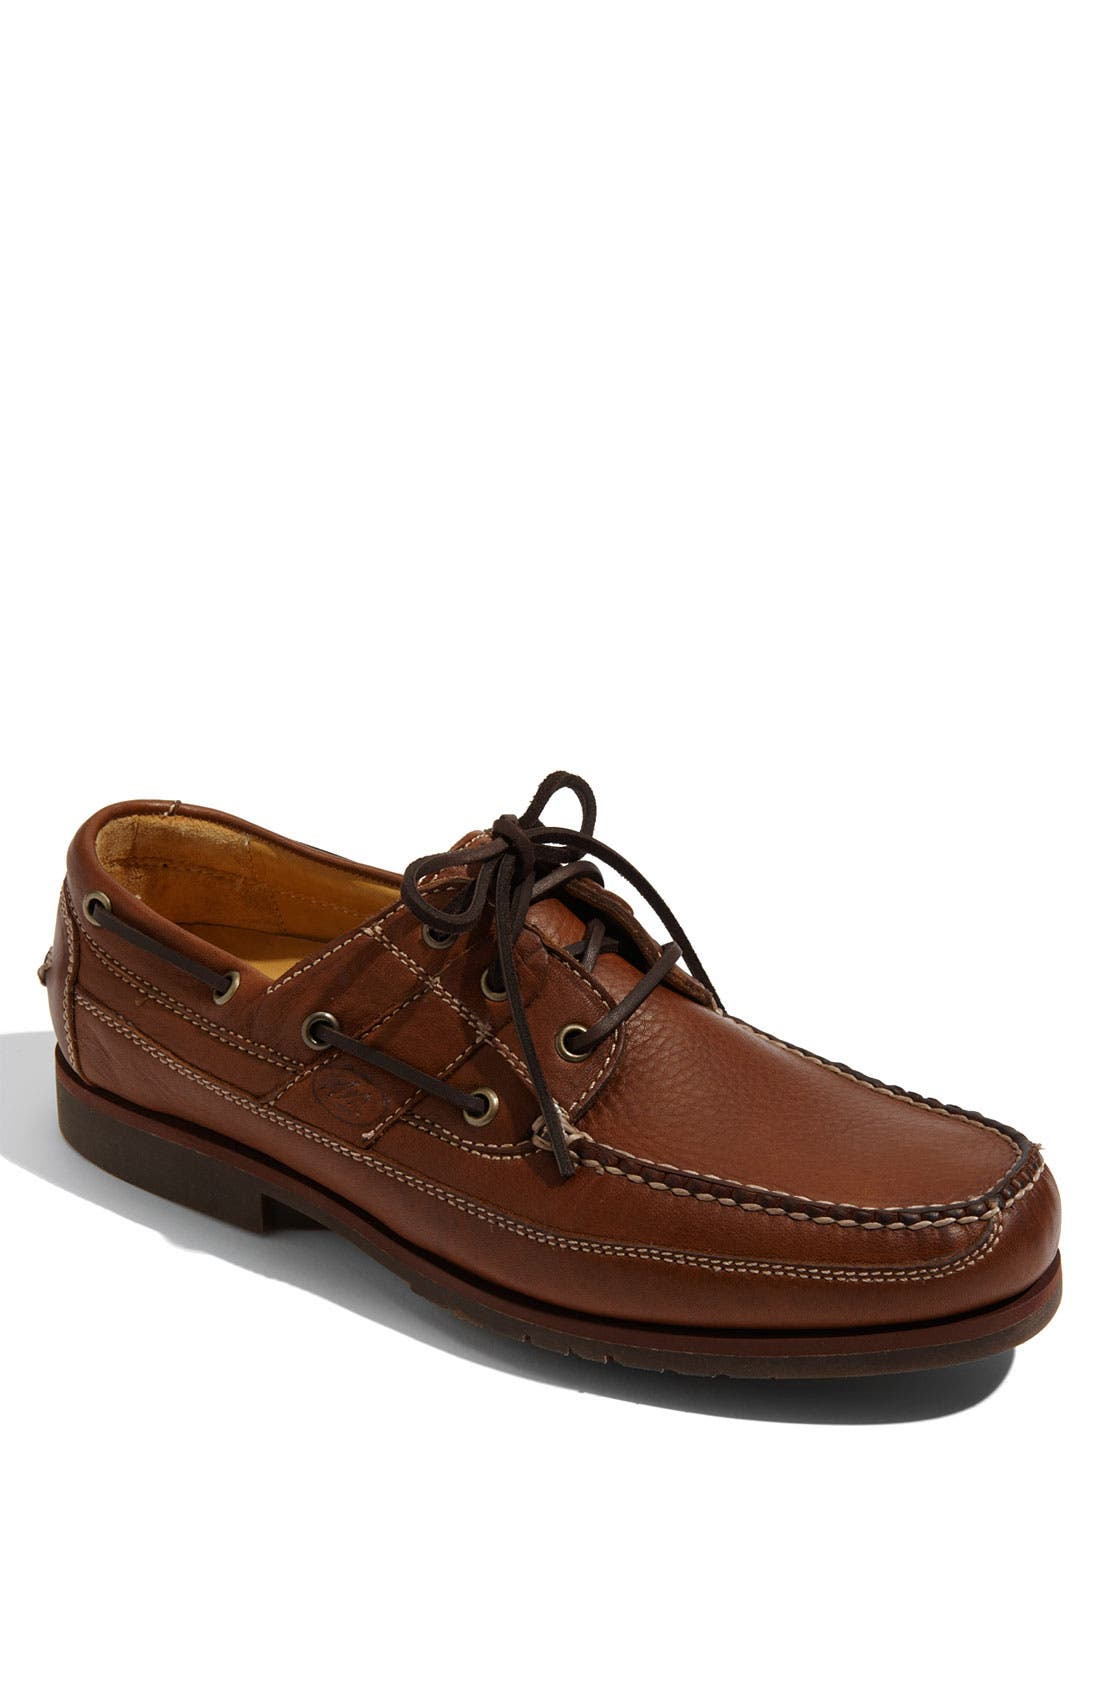 Alternate Image 1 Selected - Neil M 'Bridgeport' Boat Shoe (Online Only)